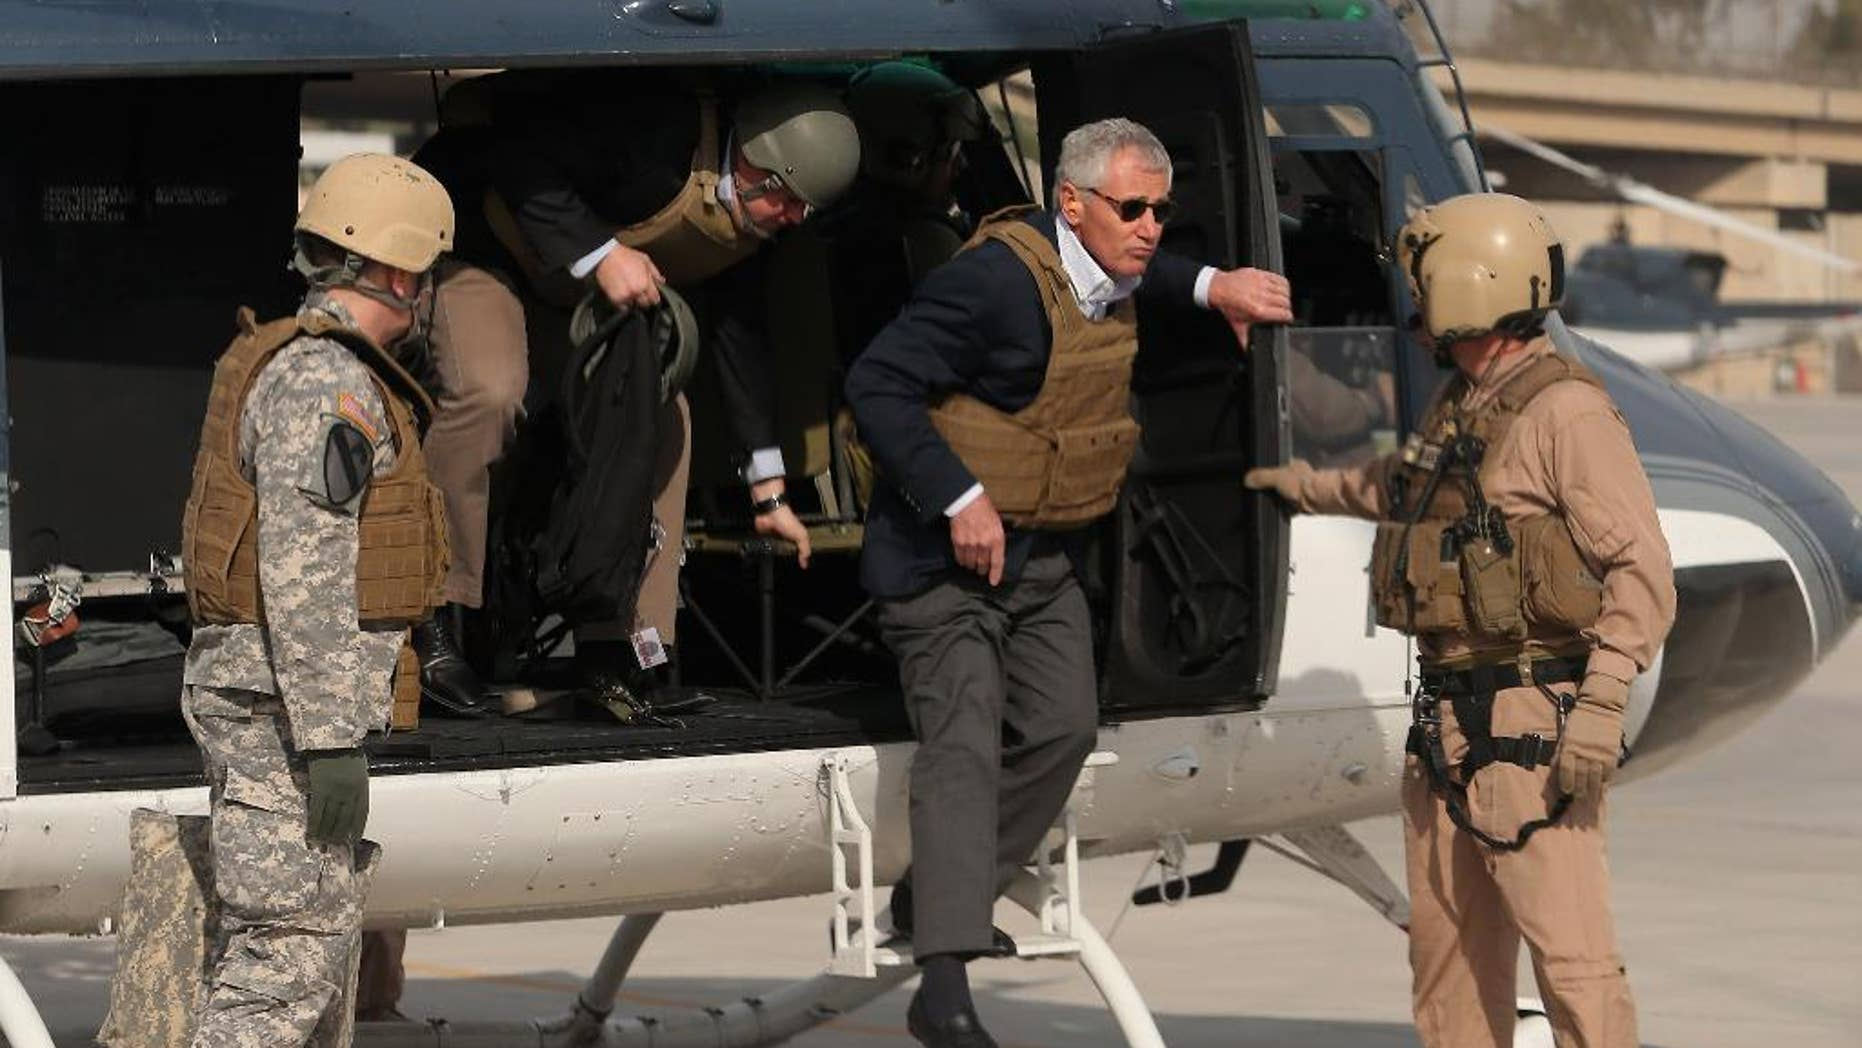 Defense Secretary Chuck Hagel, wearing body armor, steps off a helicopter in Baghdad, Iraq, Tuesday, Dec. 9, 2014, for a visit with military officials and Prime Minister Haider al-Abadi.  (AP Photo/Mark Wilson, Pool)